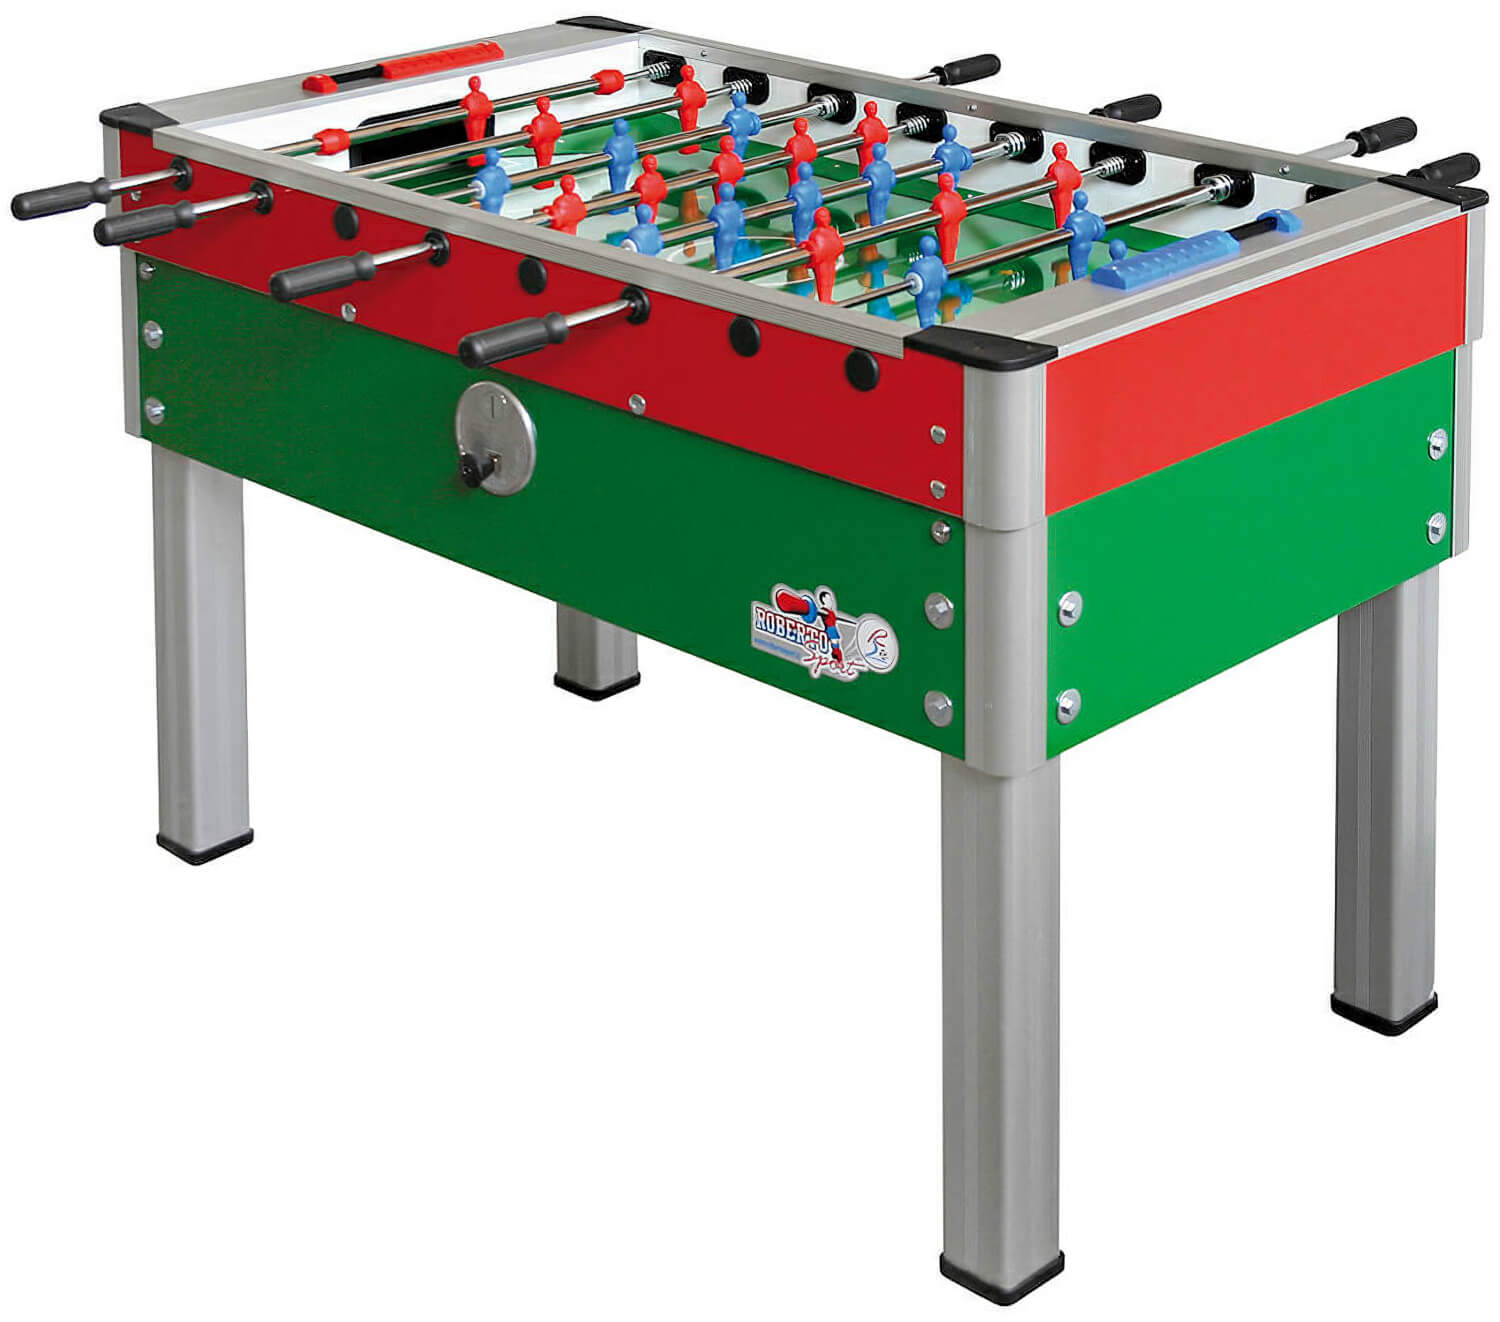 Roberto Sport New Camp Coin Operated Football Table Liberty Games